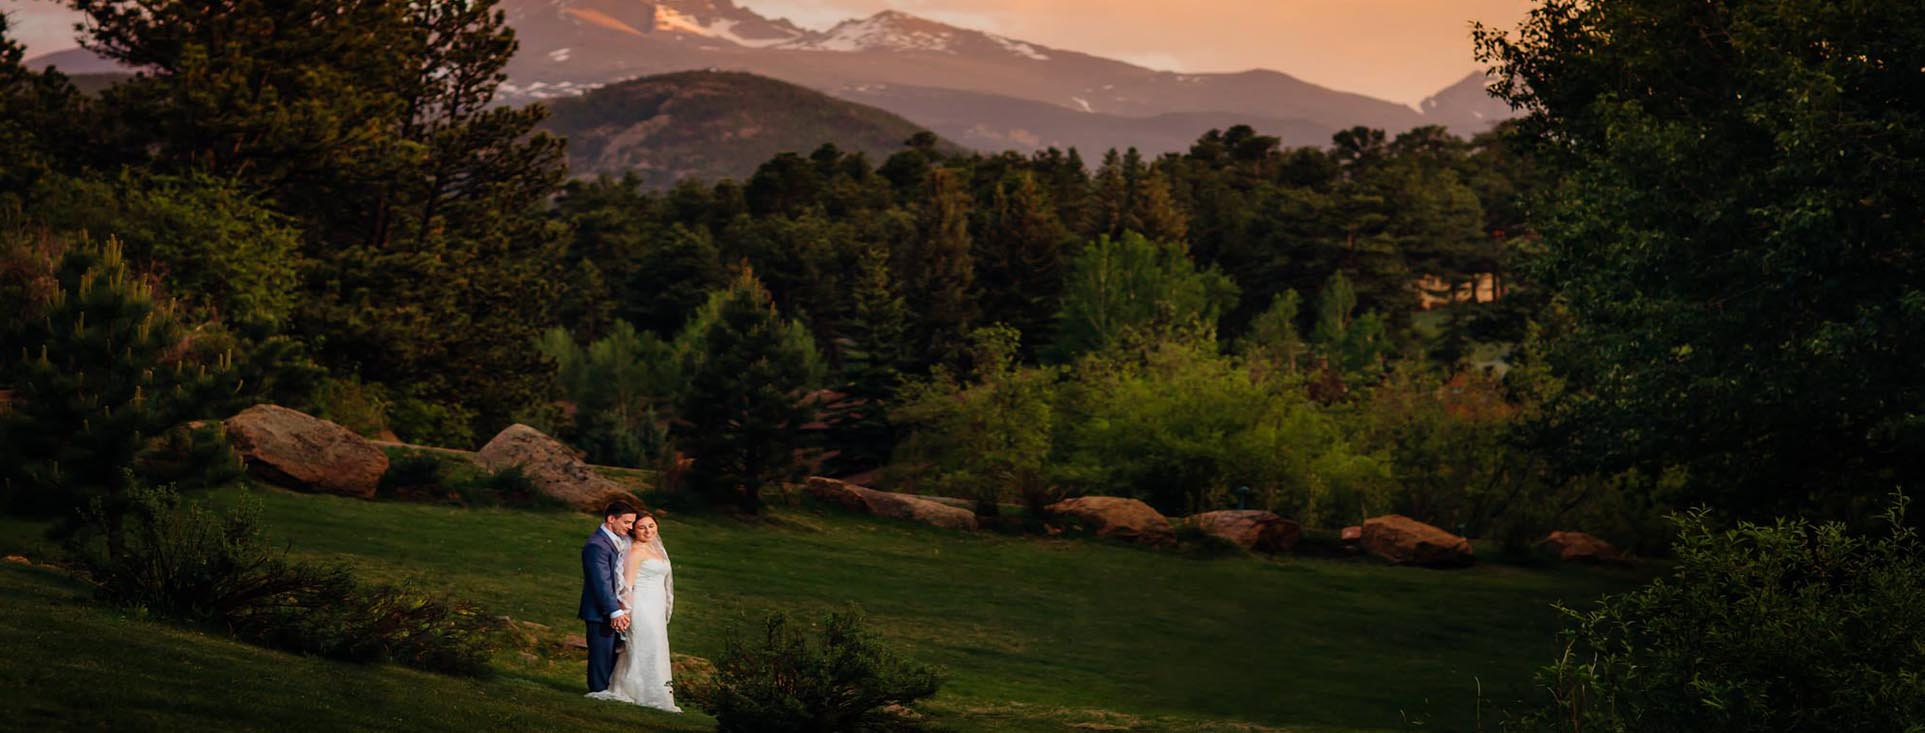 wedding couple outside with mountains behind them.